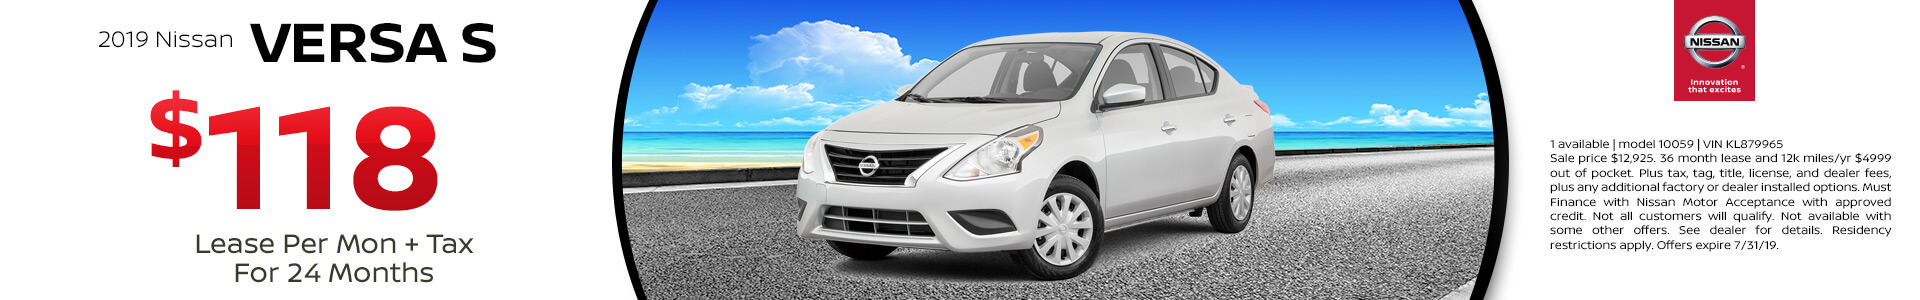 2019 Nissan Versa Lease for $118